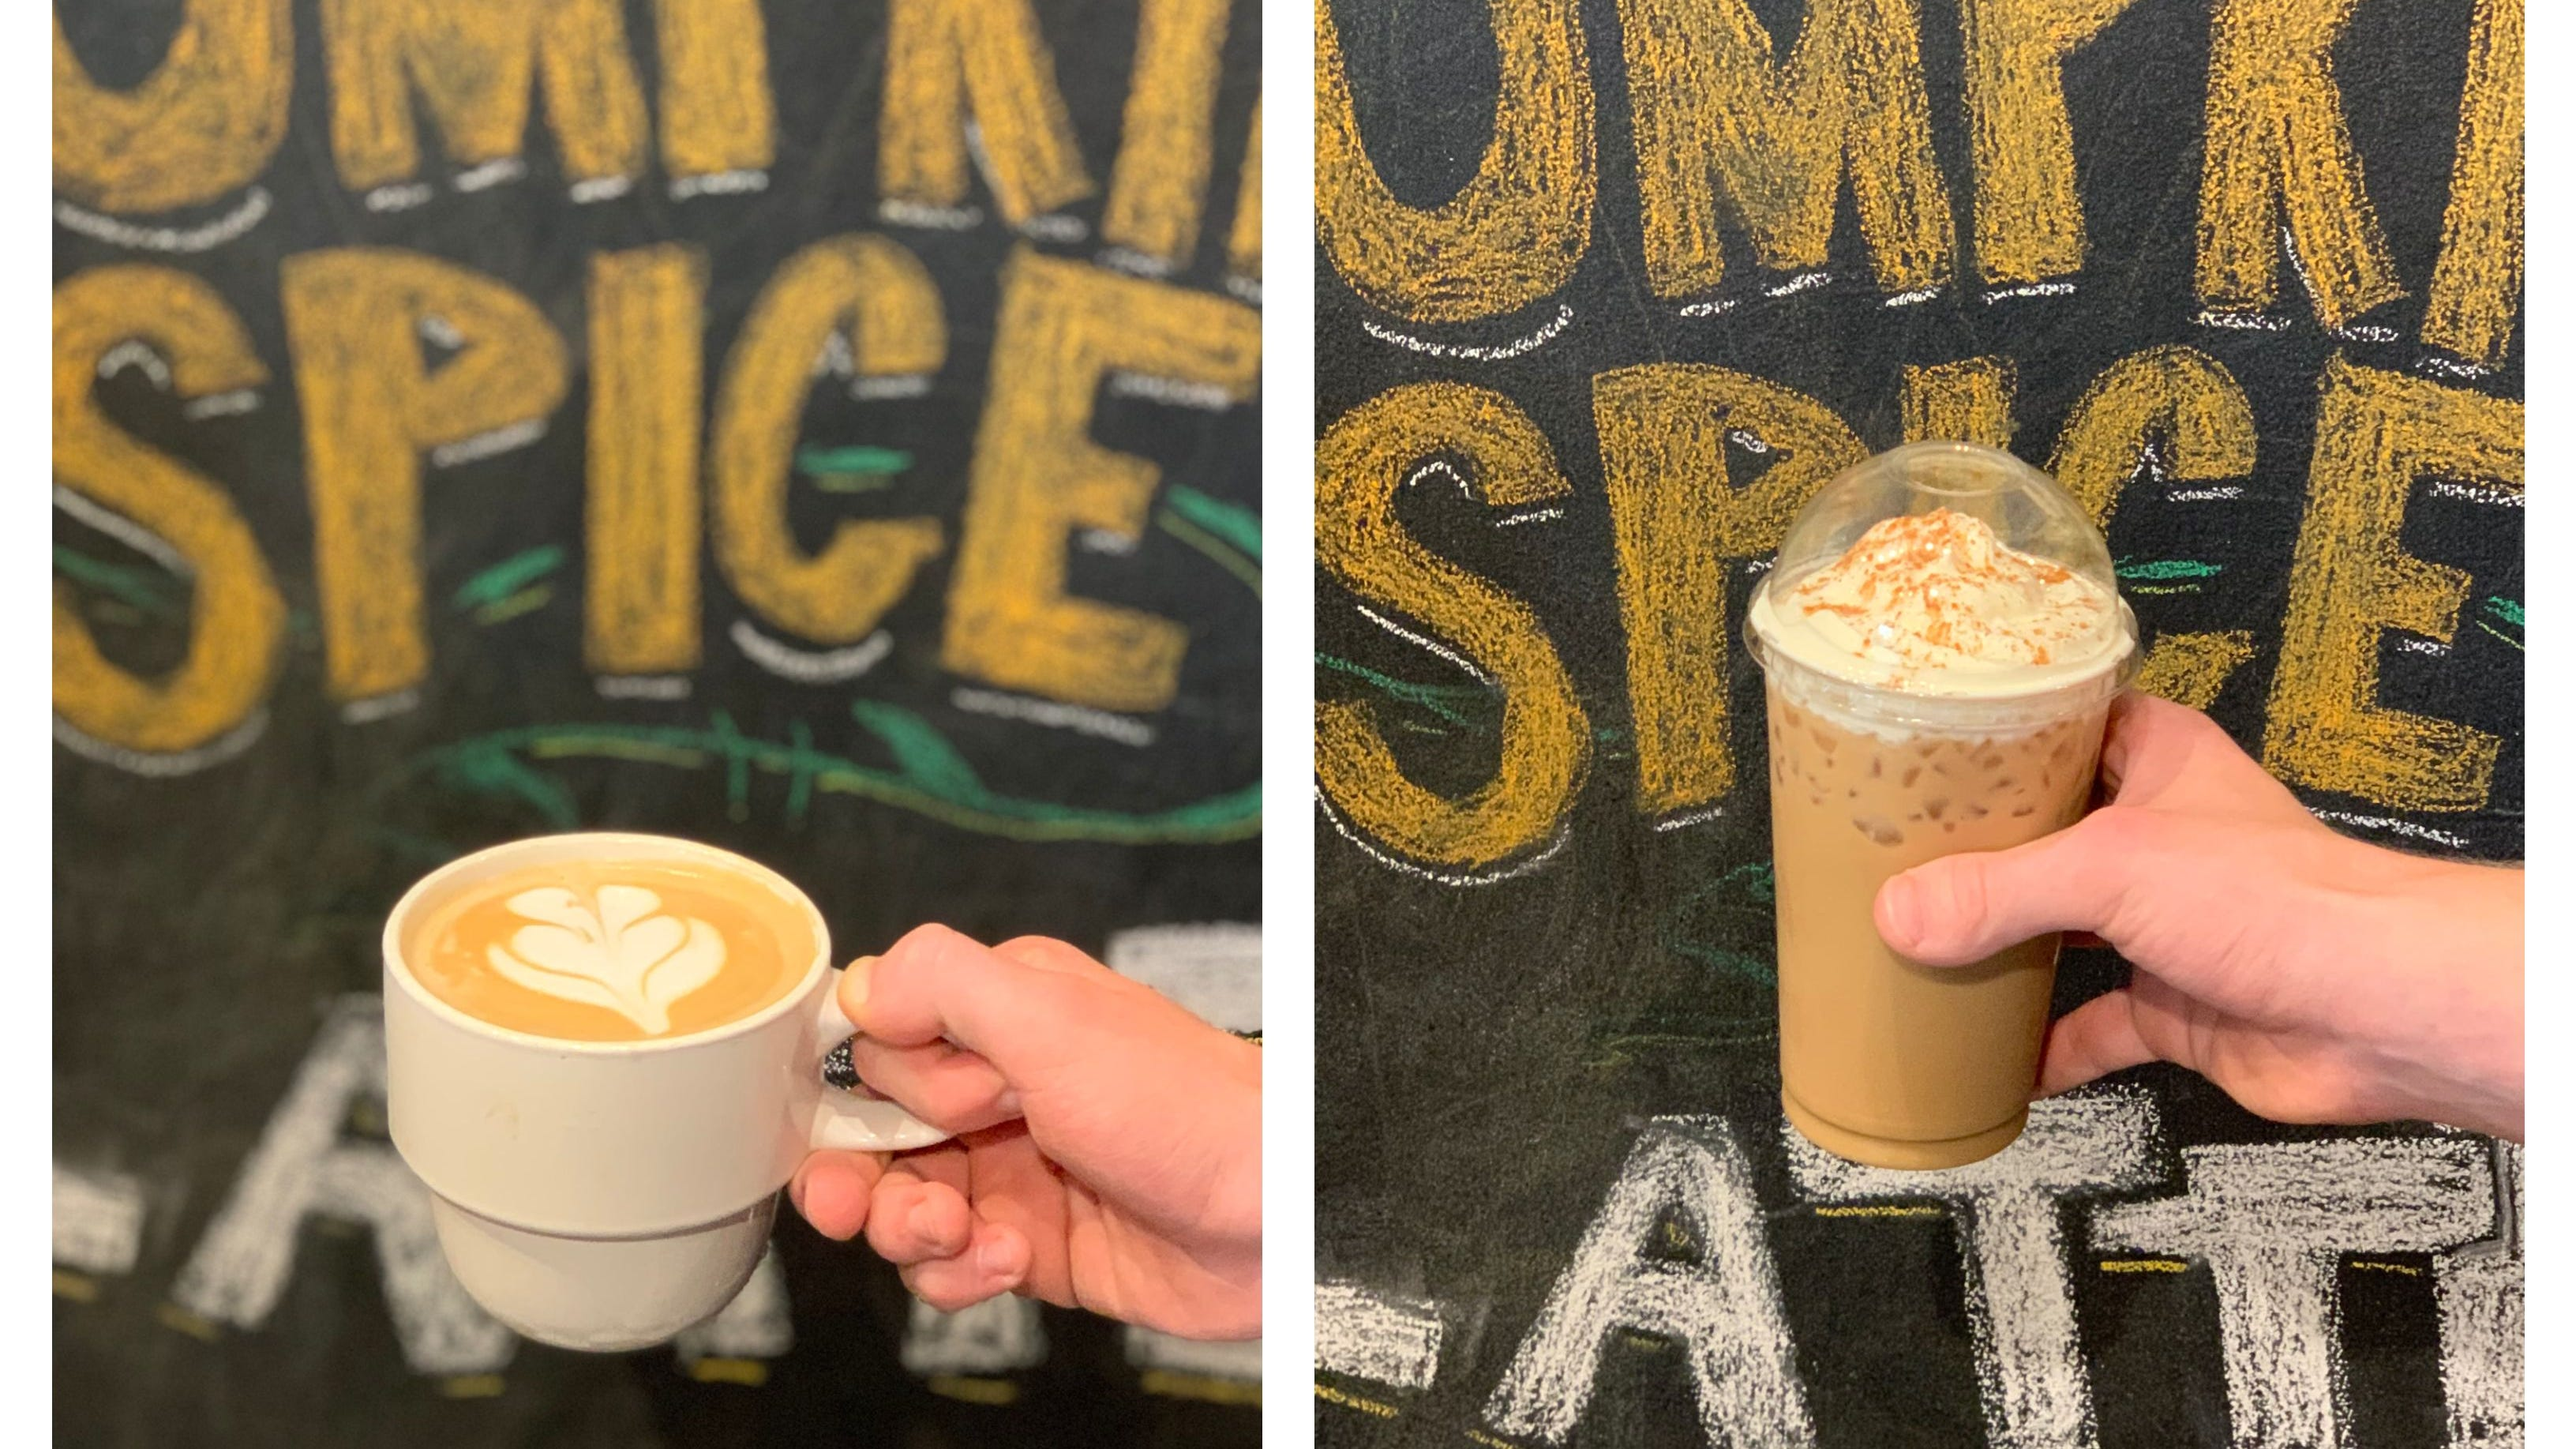 Carpe Cafe serves a traditional hot, pumpkin spice-flavored latte with steamed milk. The iced version is made with the same espresso and flavoring, but topped with whipped cream.